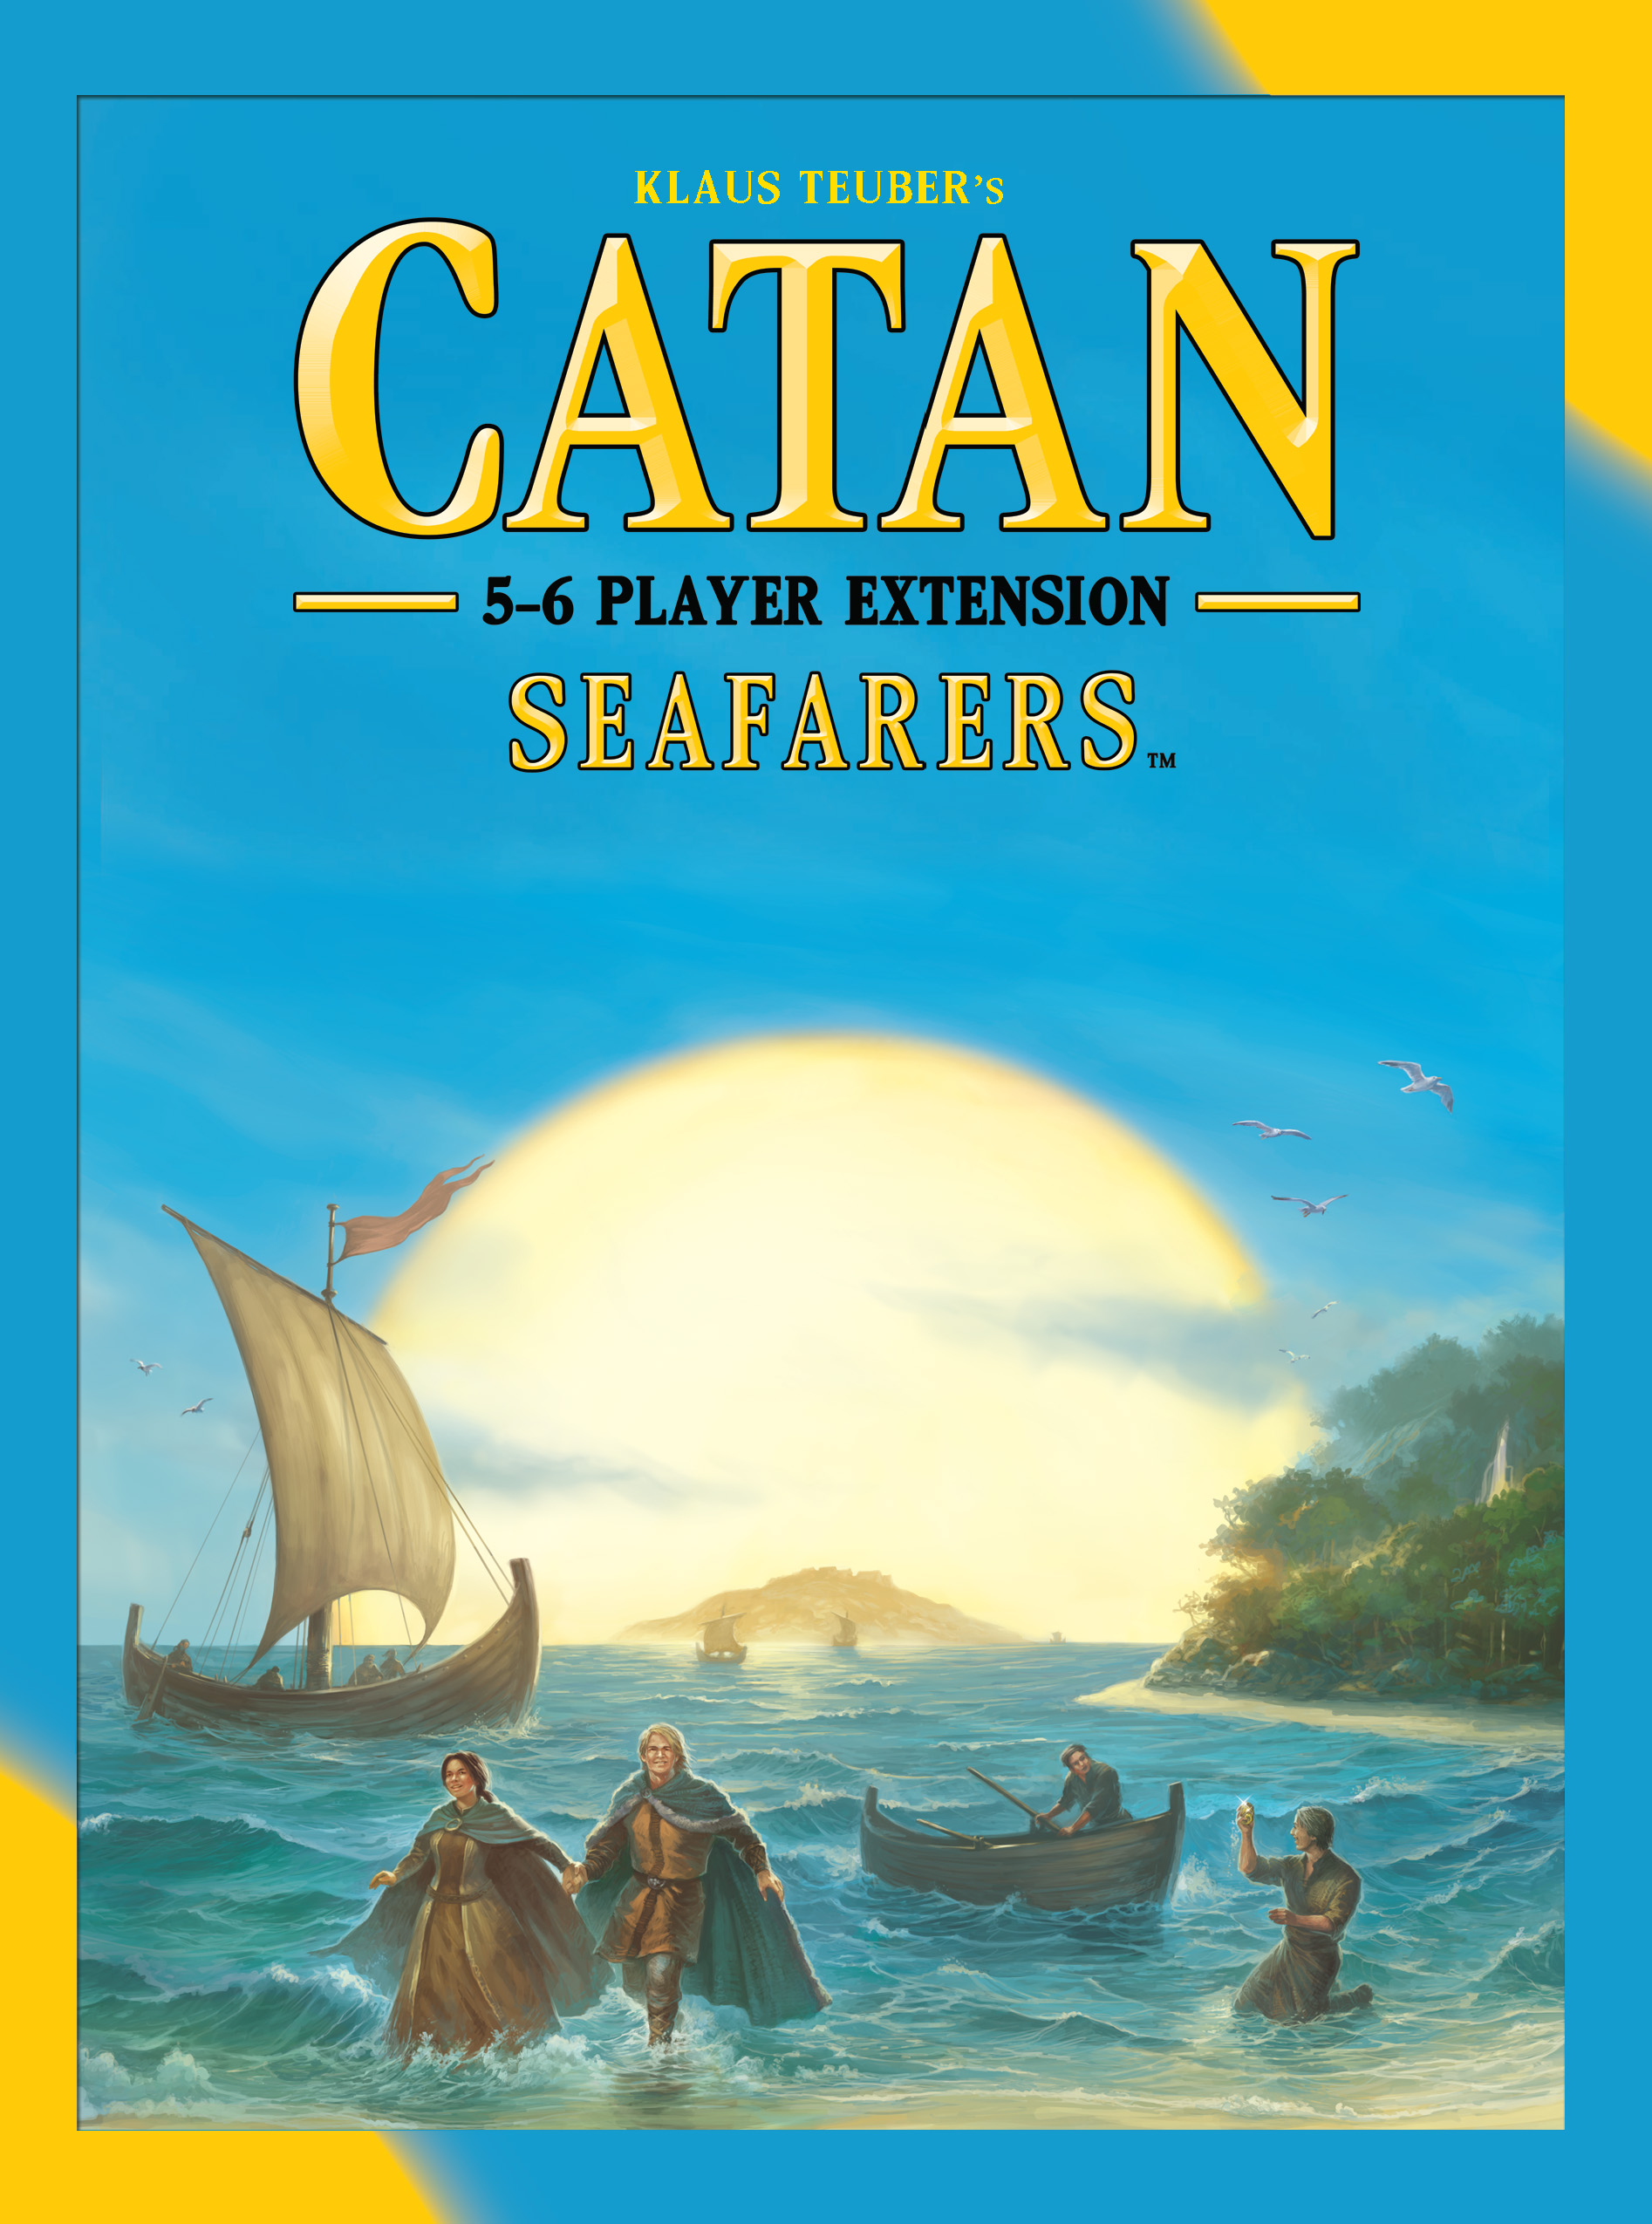 Catan: Seafarers 5-6 Player Extension Box Front